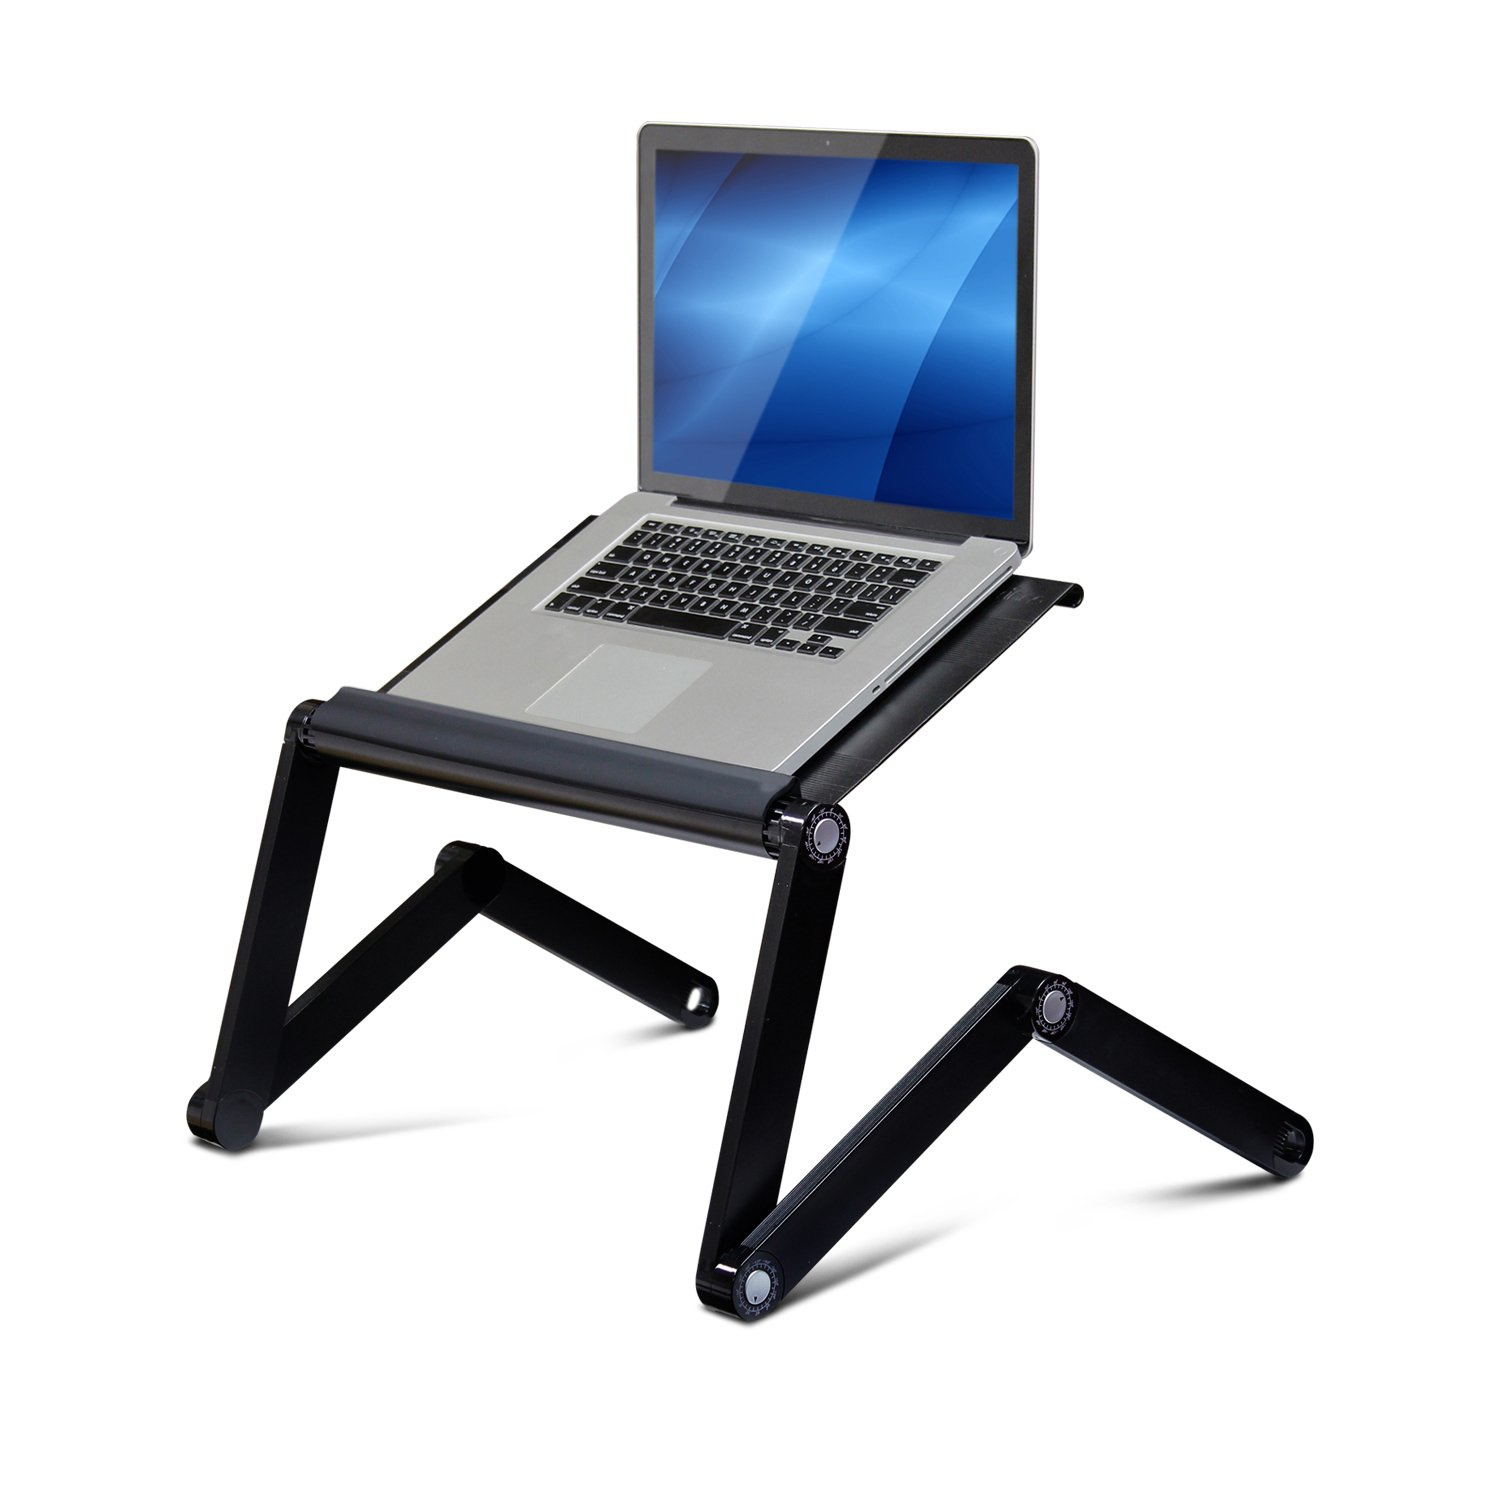 Laptop Chair Desk Amazoncom Furinno Adjustable Vented Laptop Table Laptop Computer